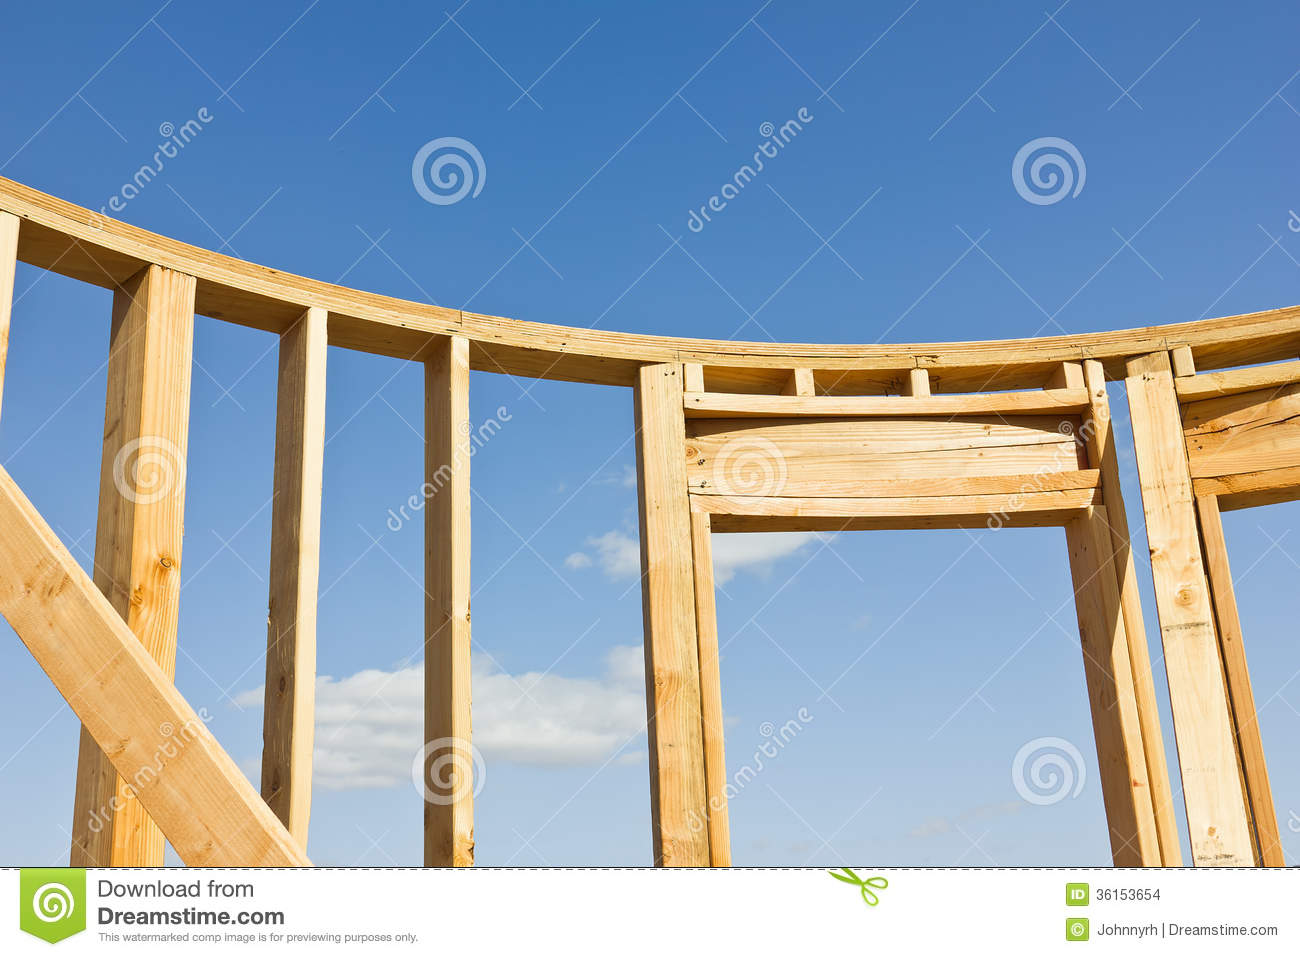 Wood Frame Wall wood frame for building stock photo - image: 36153630